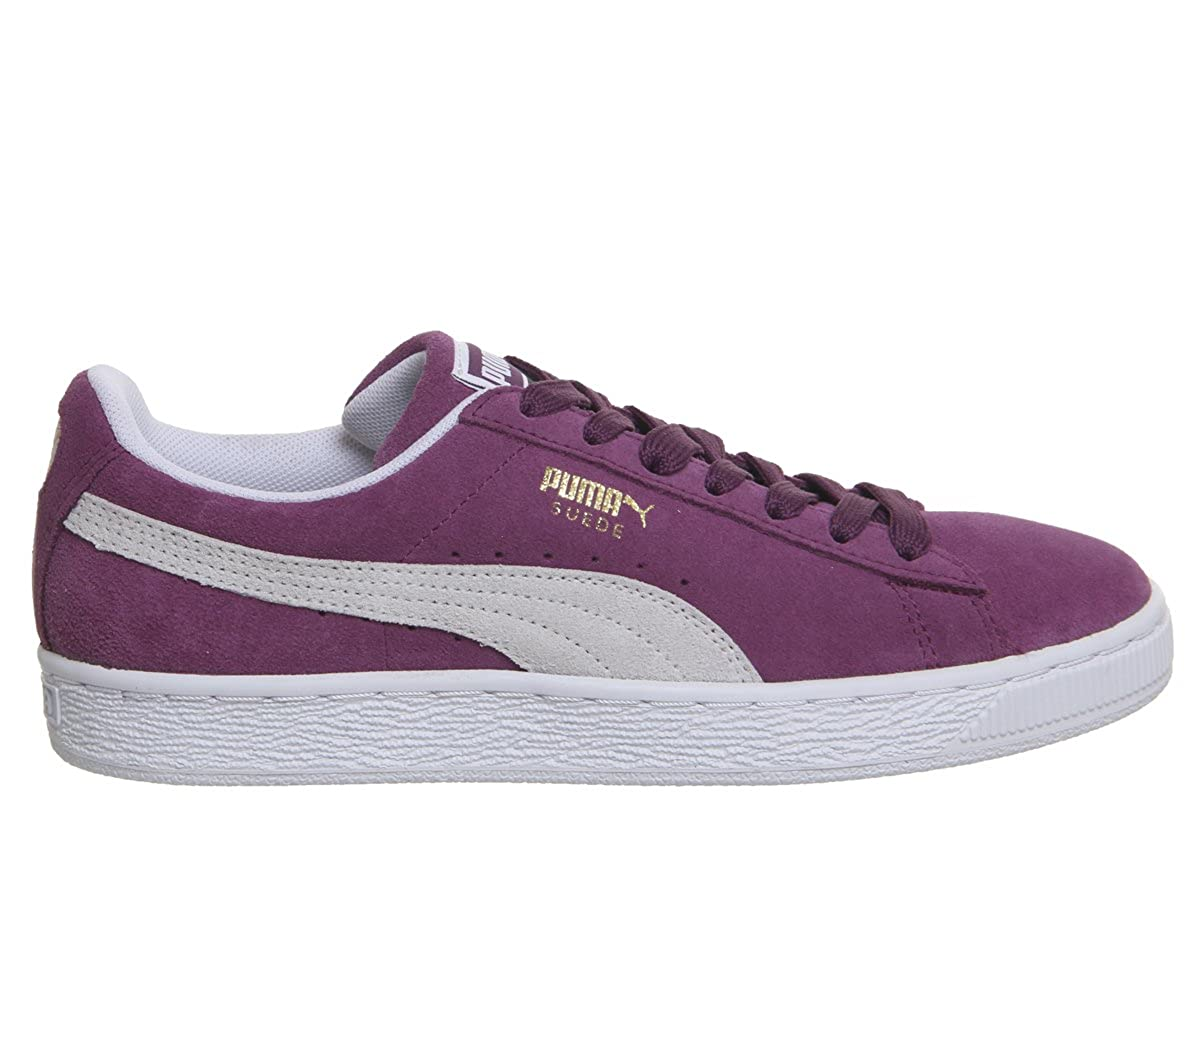 Puma Suede Classic+, Chaussons Turnschuhe Adulte Mixte